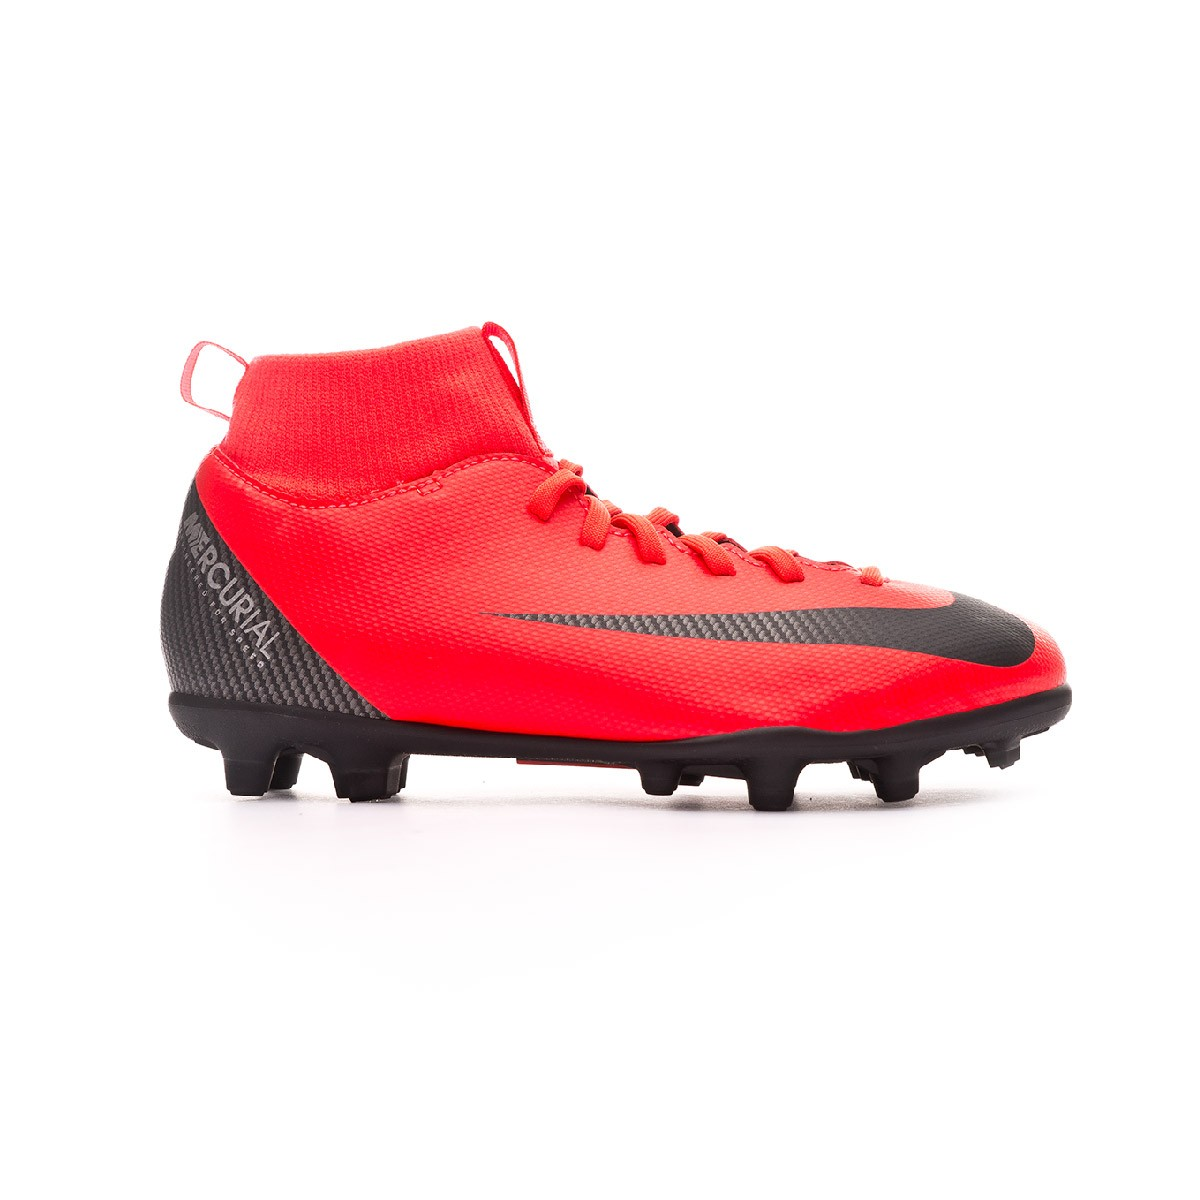 9896da6b2 Football Boots Nike Kids Mercurial Superfly VI Club CR7 MG Bright  crimson-Black-Chrome - Tienda de fútbol Fútbol Emotion